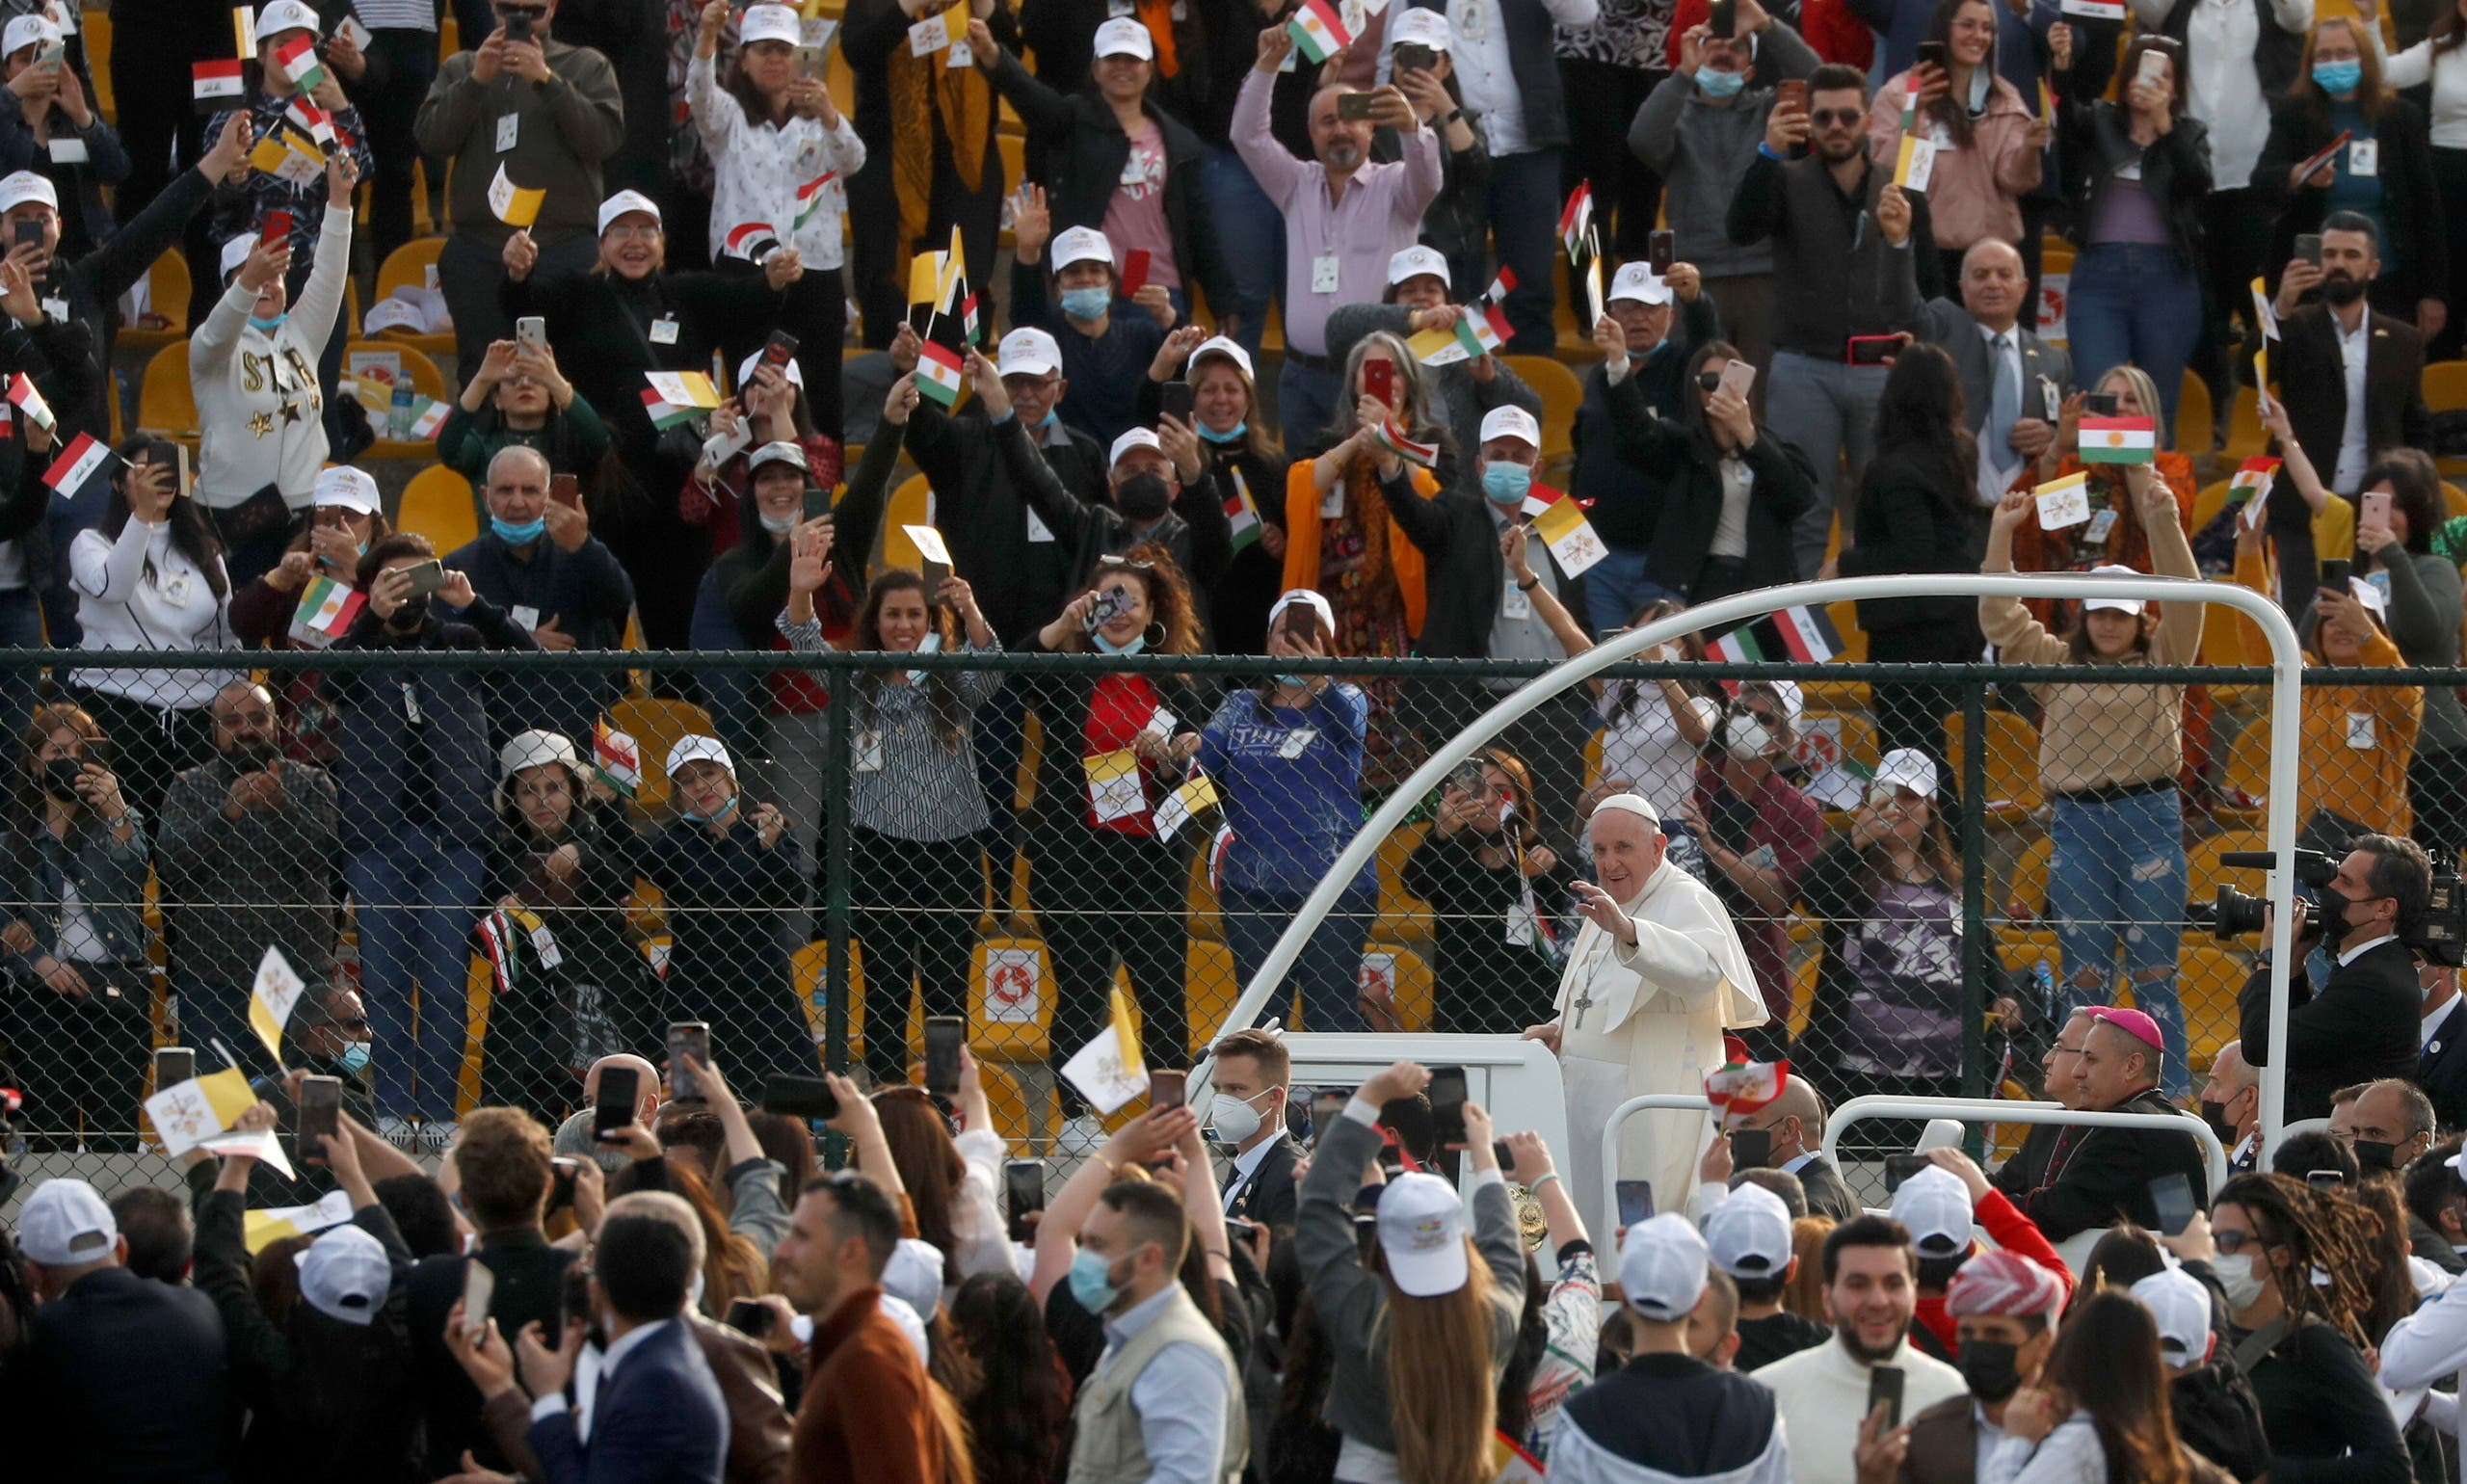 Pope Francis arrives to hold a Mass at Franso Hariri Stadium in Erbil, Iraq, March 7, 2021. (Reuters)